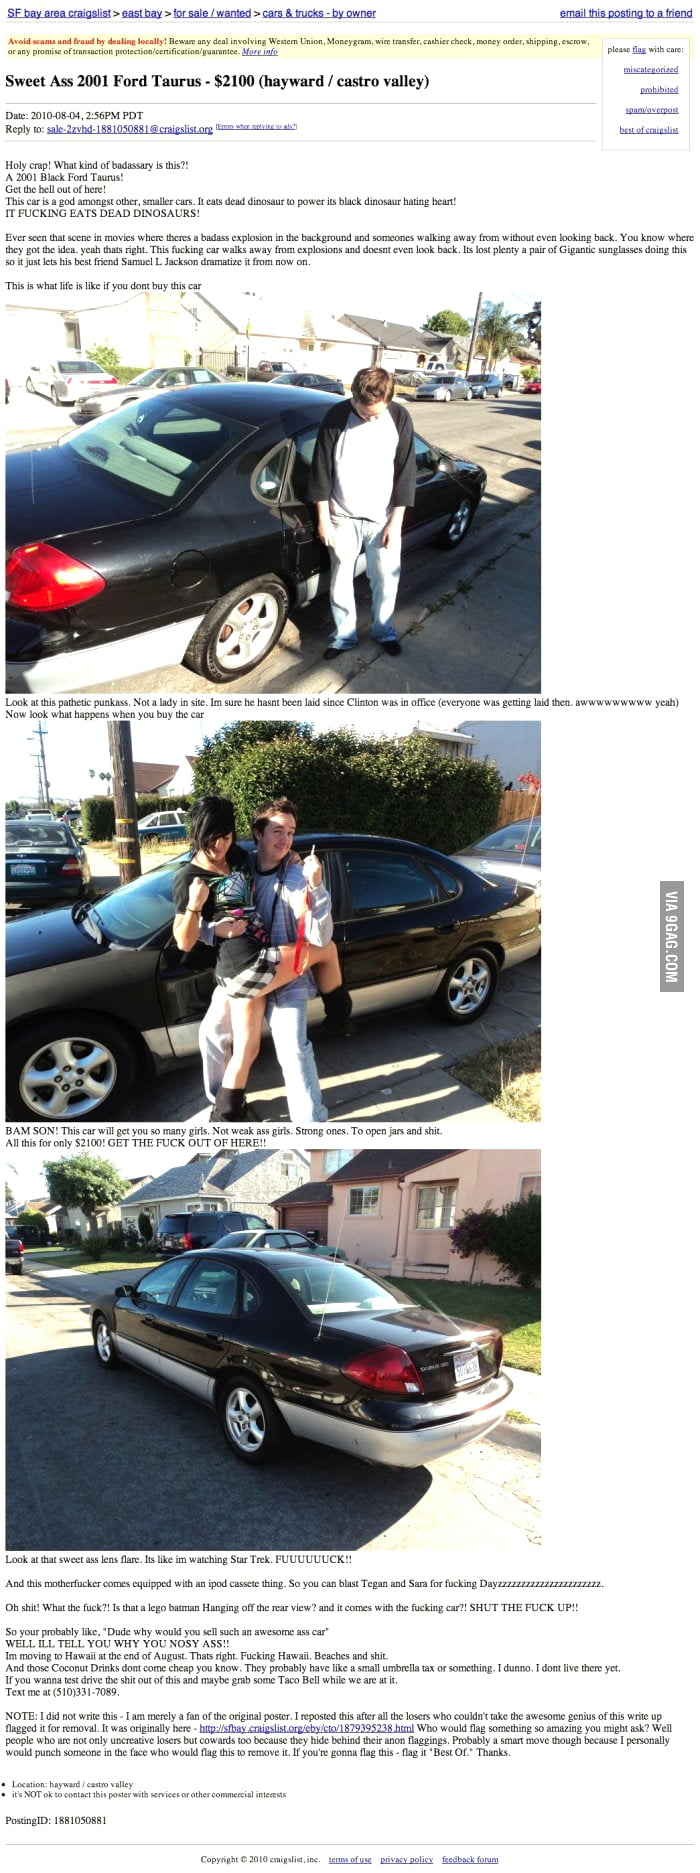 best craigslist ad for a car ever 9gag. Black Bedroom Furniture Sets. Home Design Ideas